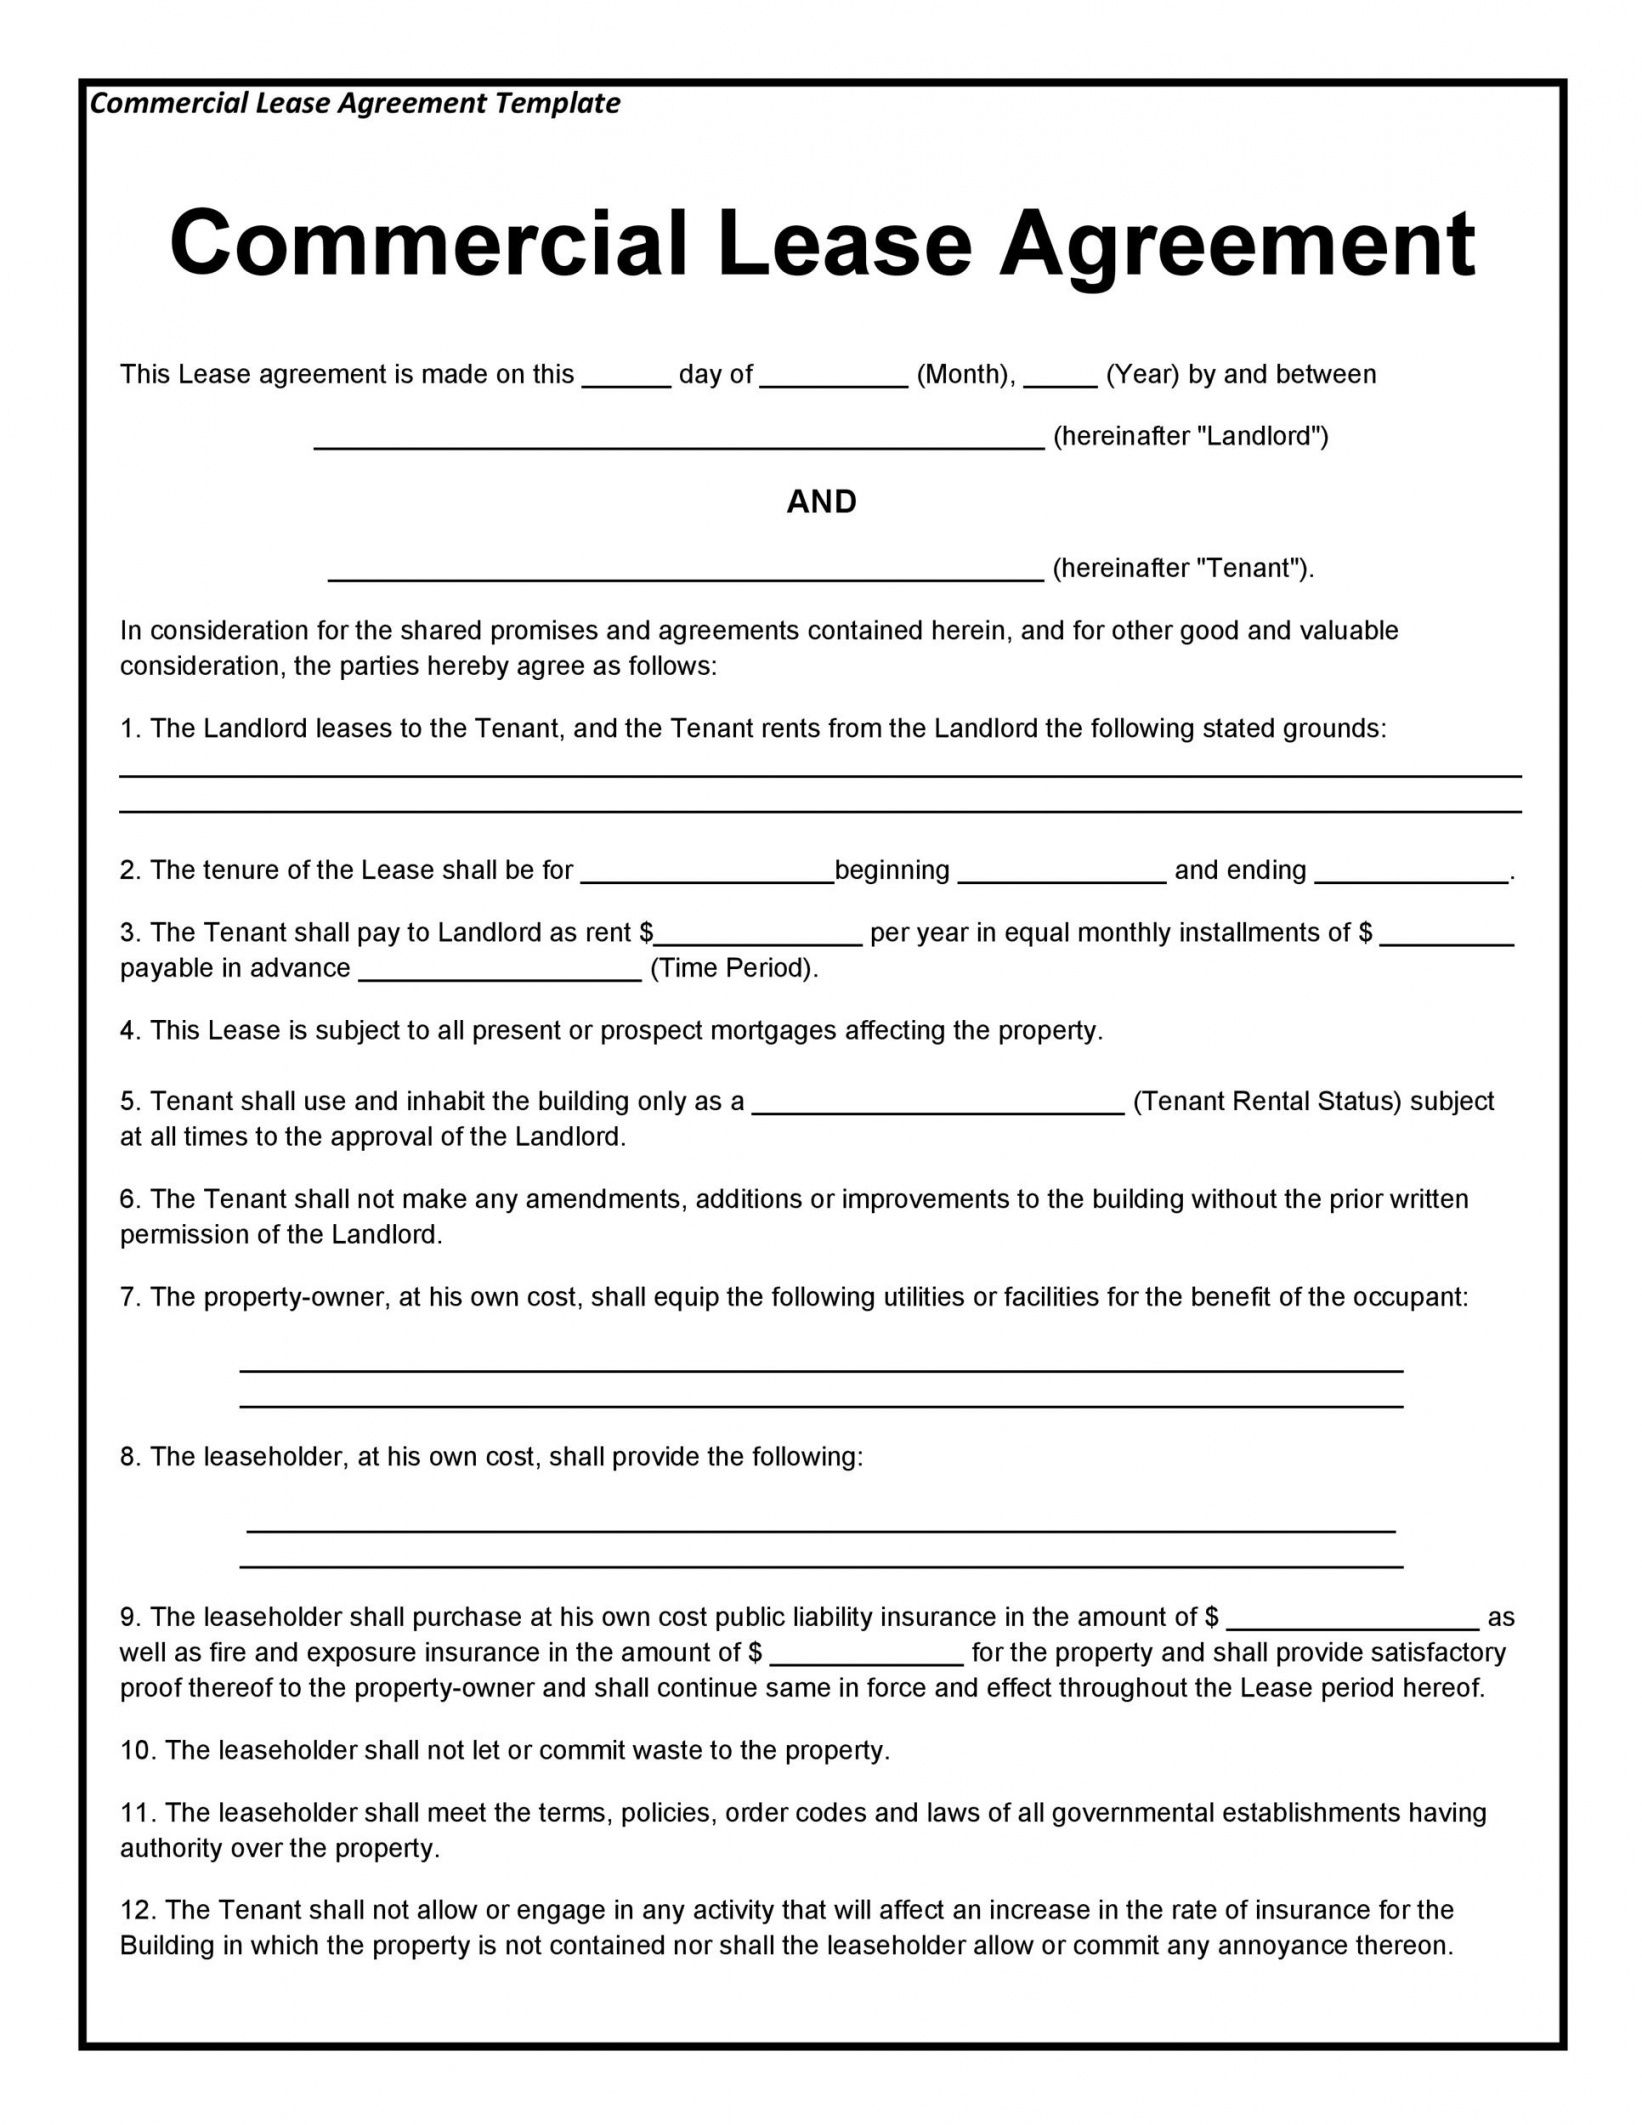 printable 26 free commercial lease agreement templates  templatelab commercial office lease agreement template pdf